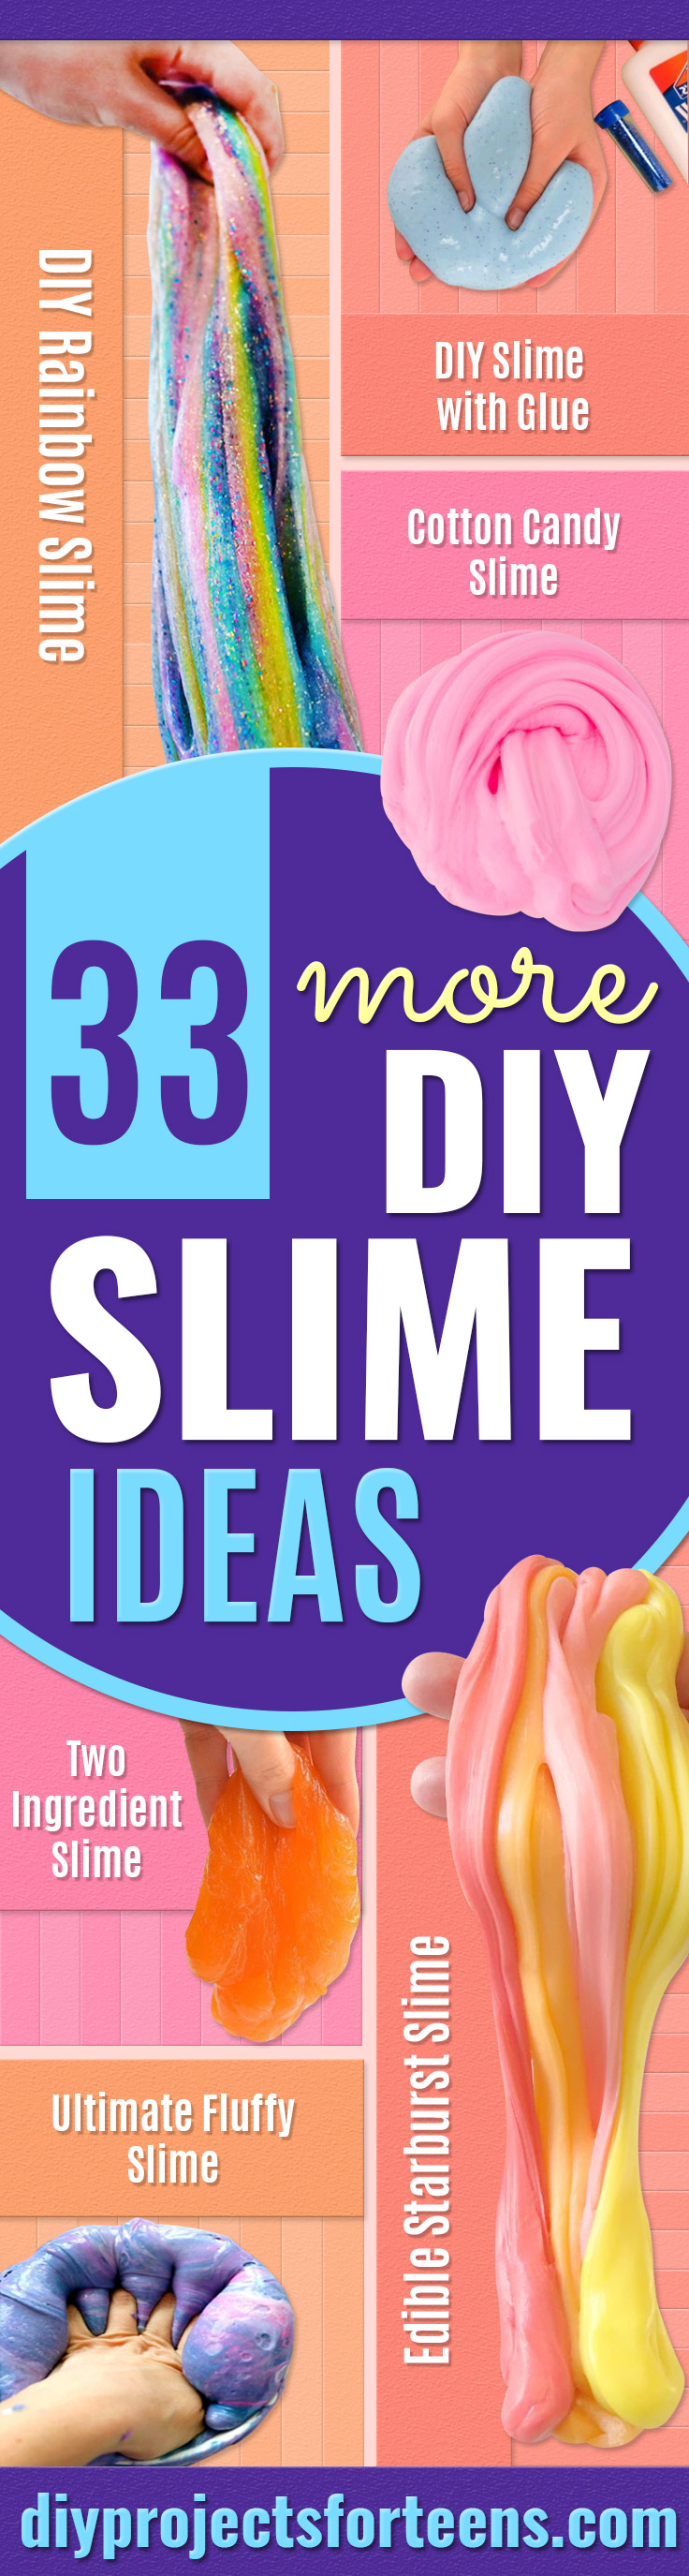 Best DIY Slime Recipes - 3-Ingredient Color-Changing Edible Silly Putty - Cool and Easy Slime Recipe and Tutorials - Ideas Without Glue, Without Borax, For Kids, With Liquid Starch, Cornstarch and Laundry Detergent - How to Make Slime at Home - Fun Crafts and DIY Projects for Teens, Kids, Teenagers and Teens - Galaxy and Glitter Slime, Edible Slime, Rainbow Colored Slime, Shaving Cream recipes and more fun crafts and slimes http://diyprojectsforteens.com/diy-slime-recipe-ideas